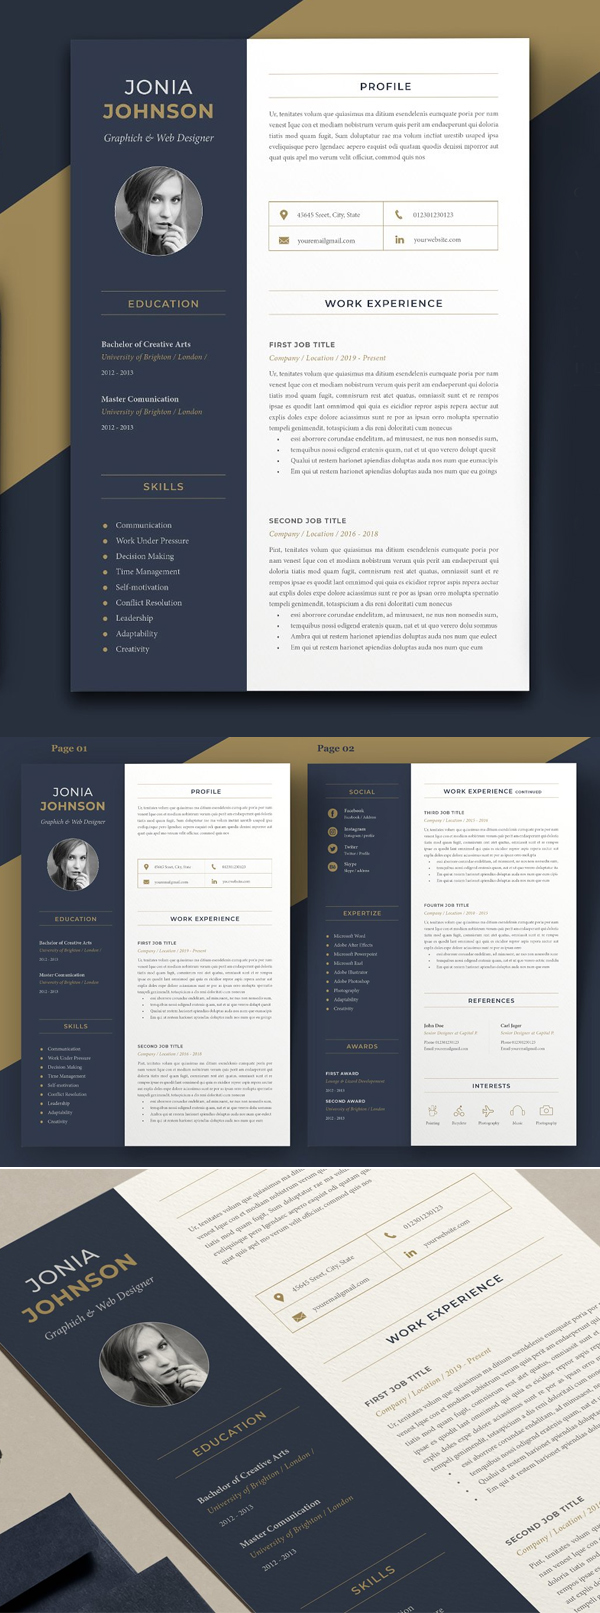 50 Best Resume Templates Of 2020 - 8